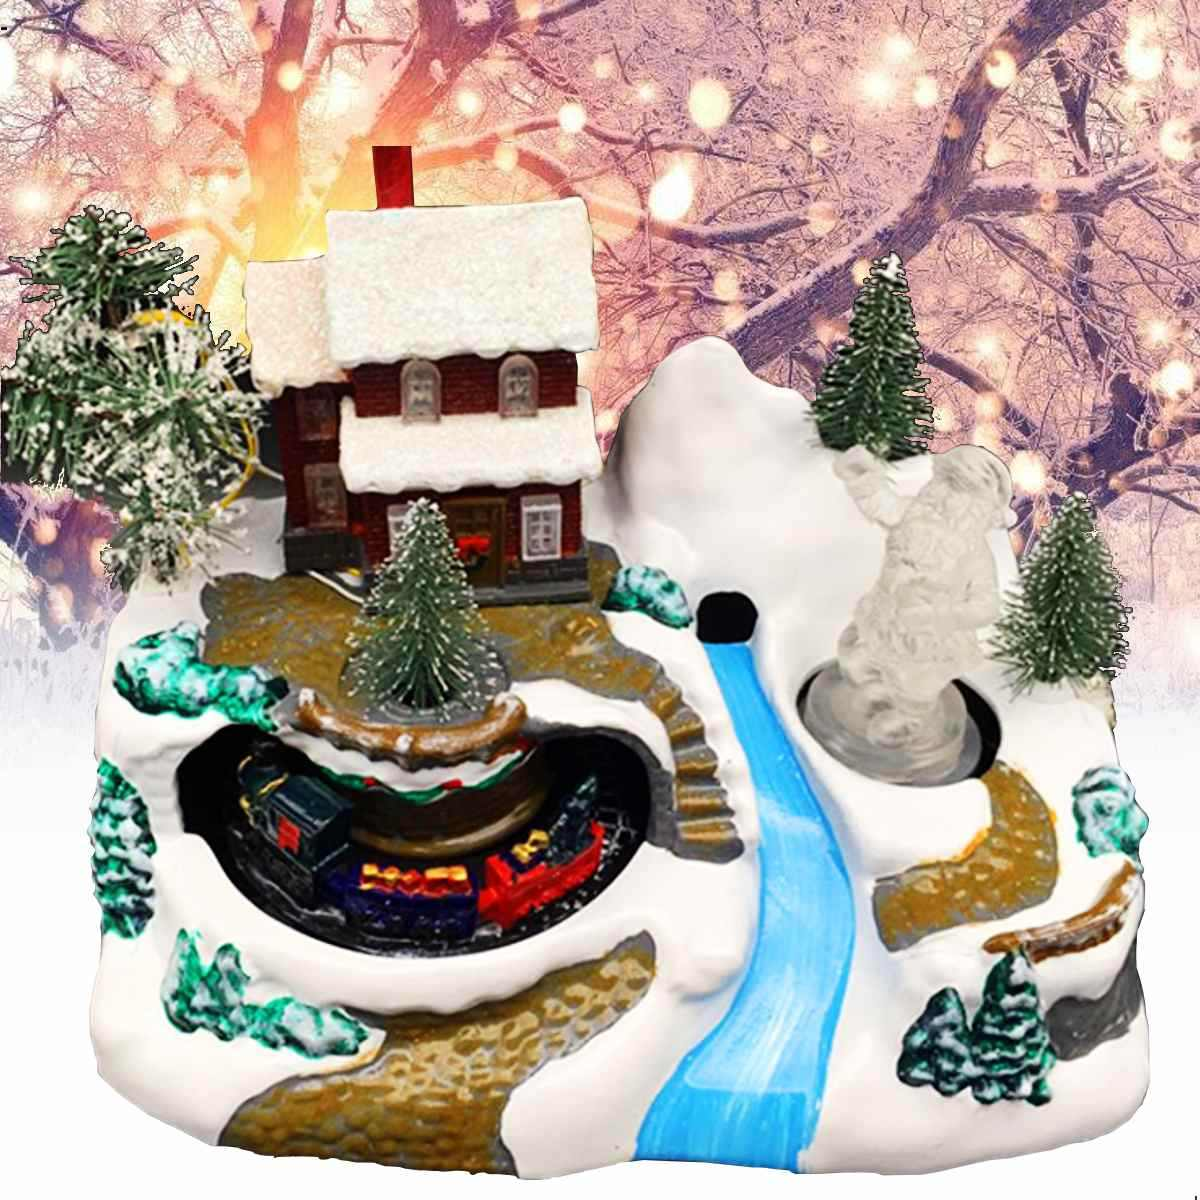 Christmas Scene Music Box With LED Night Light Toy Moving Train Christmas Tree Snow Santa Claus Home Decor Crafts Music Box Gift